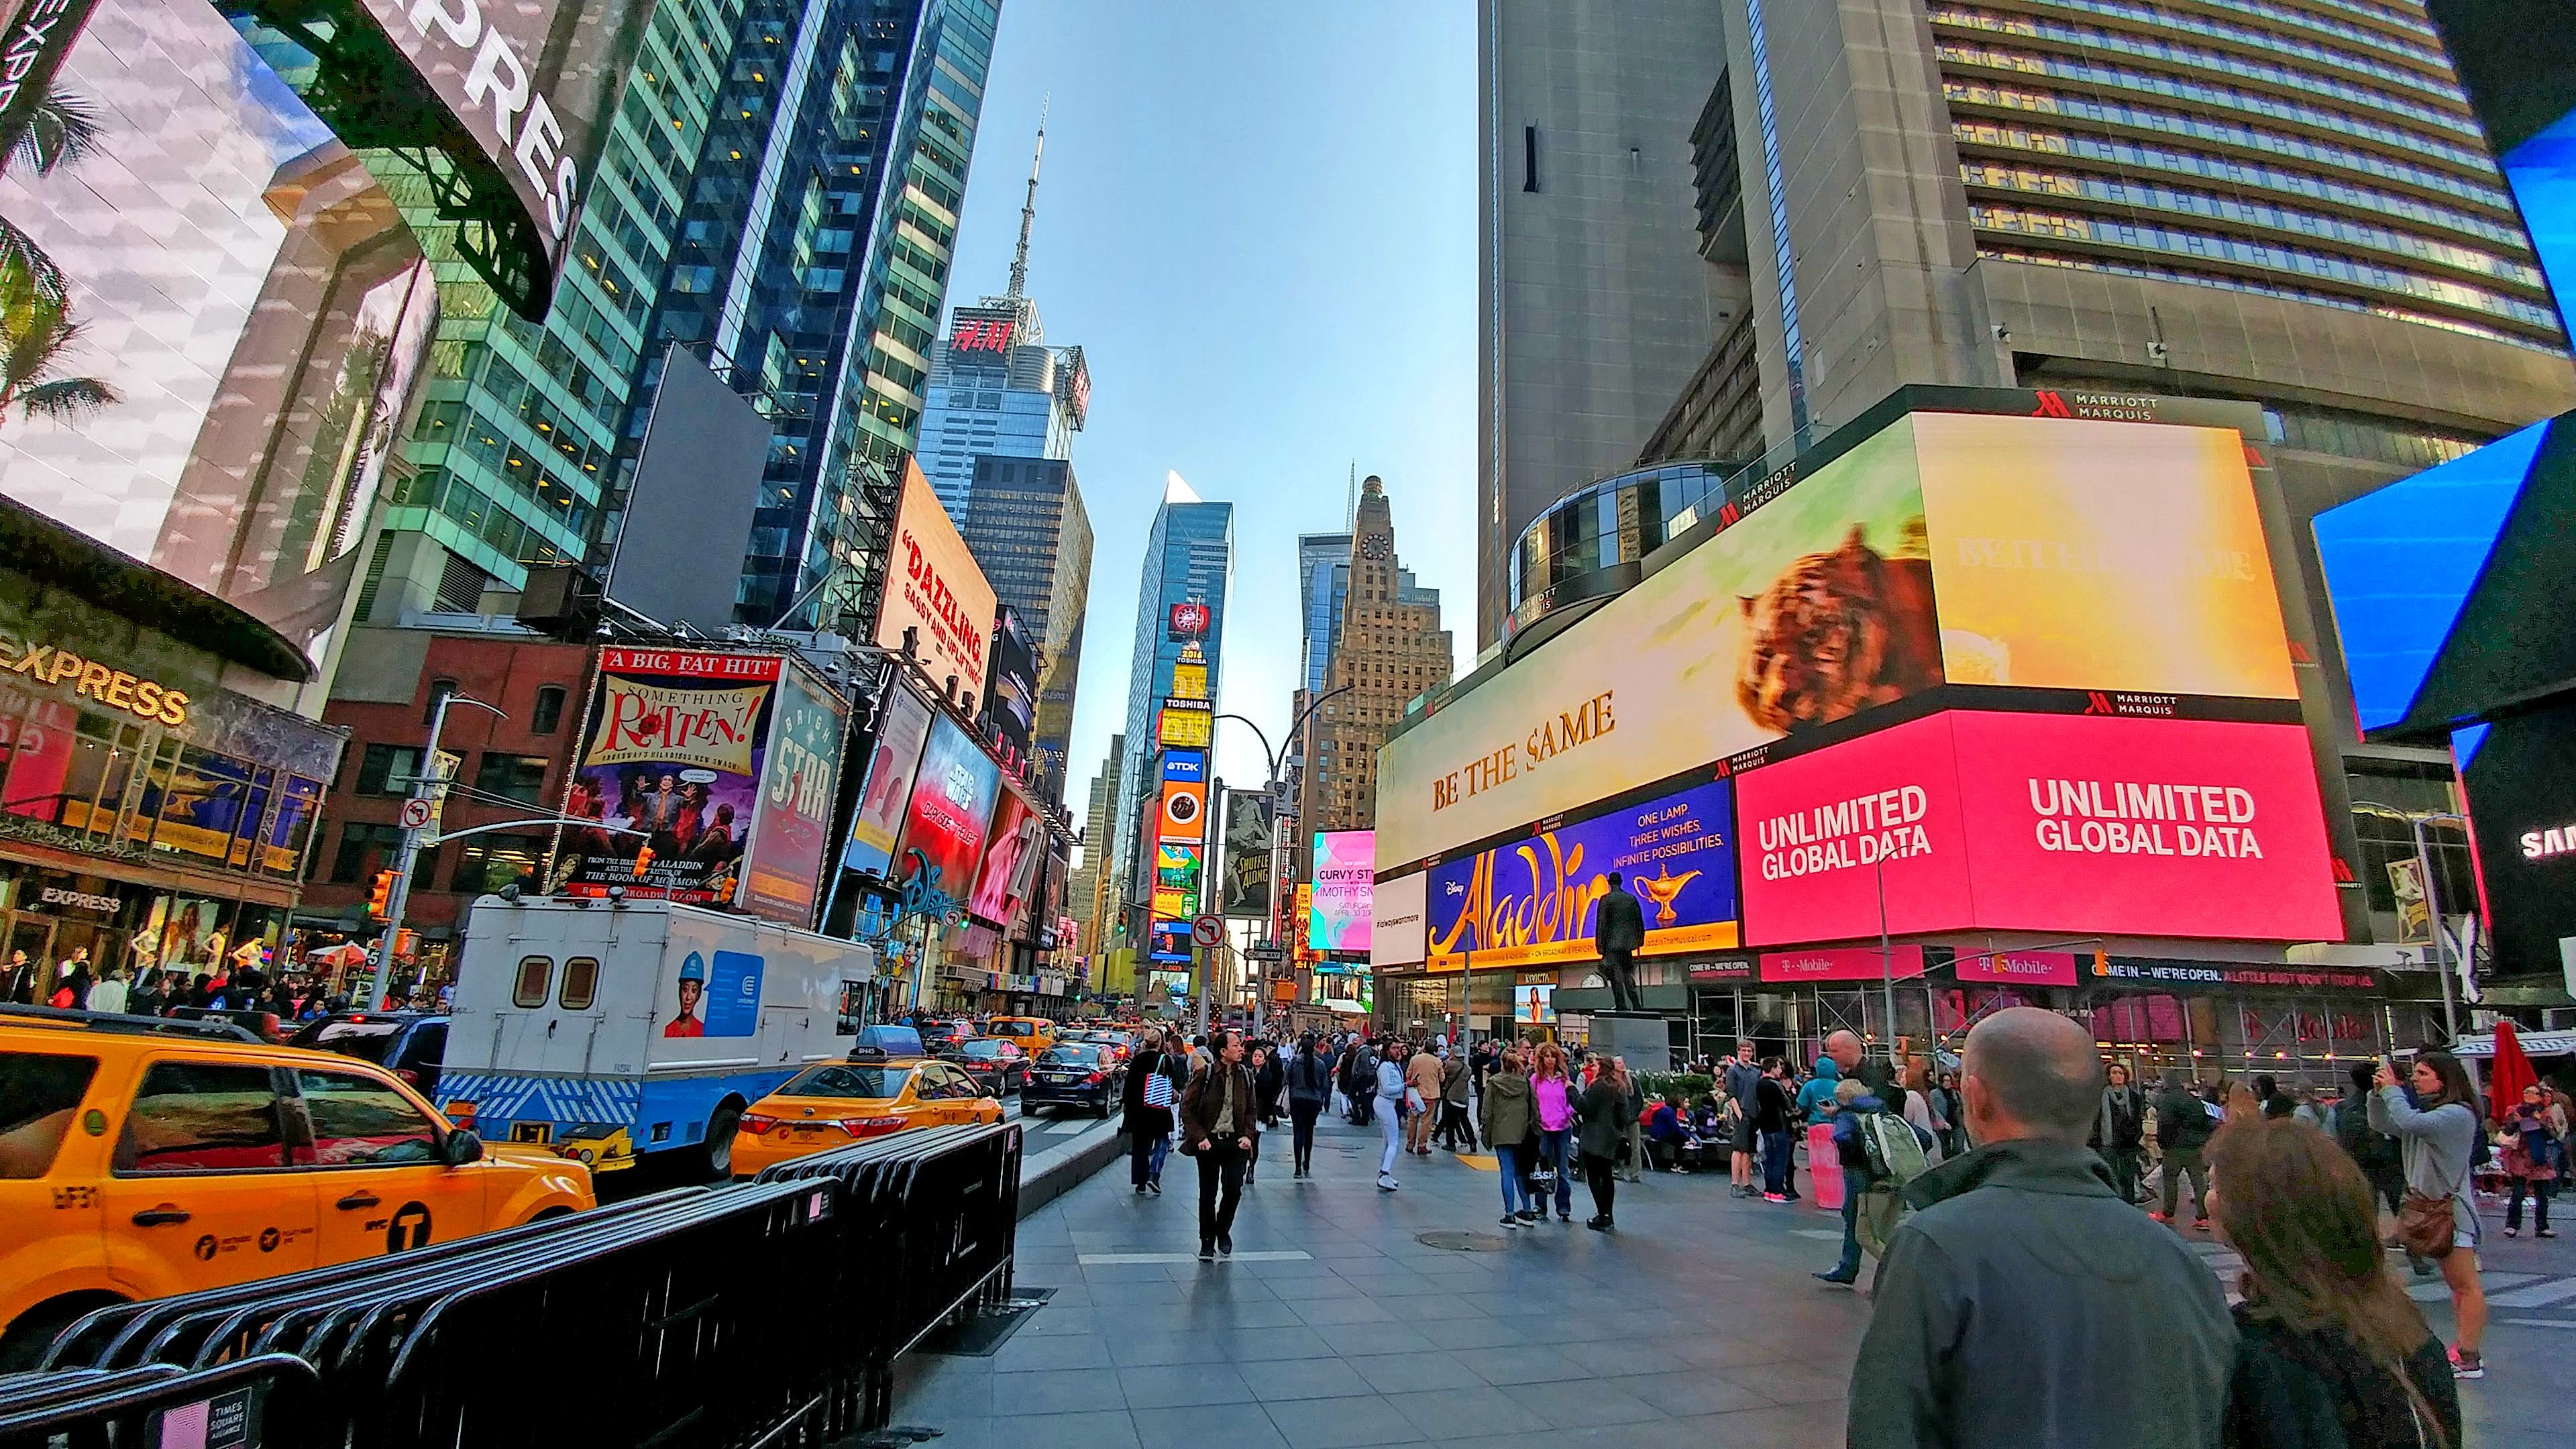 Usa Hd Wallpaper Download Free Stock Photo Of New York Times Square Usa